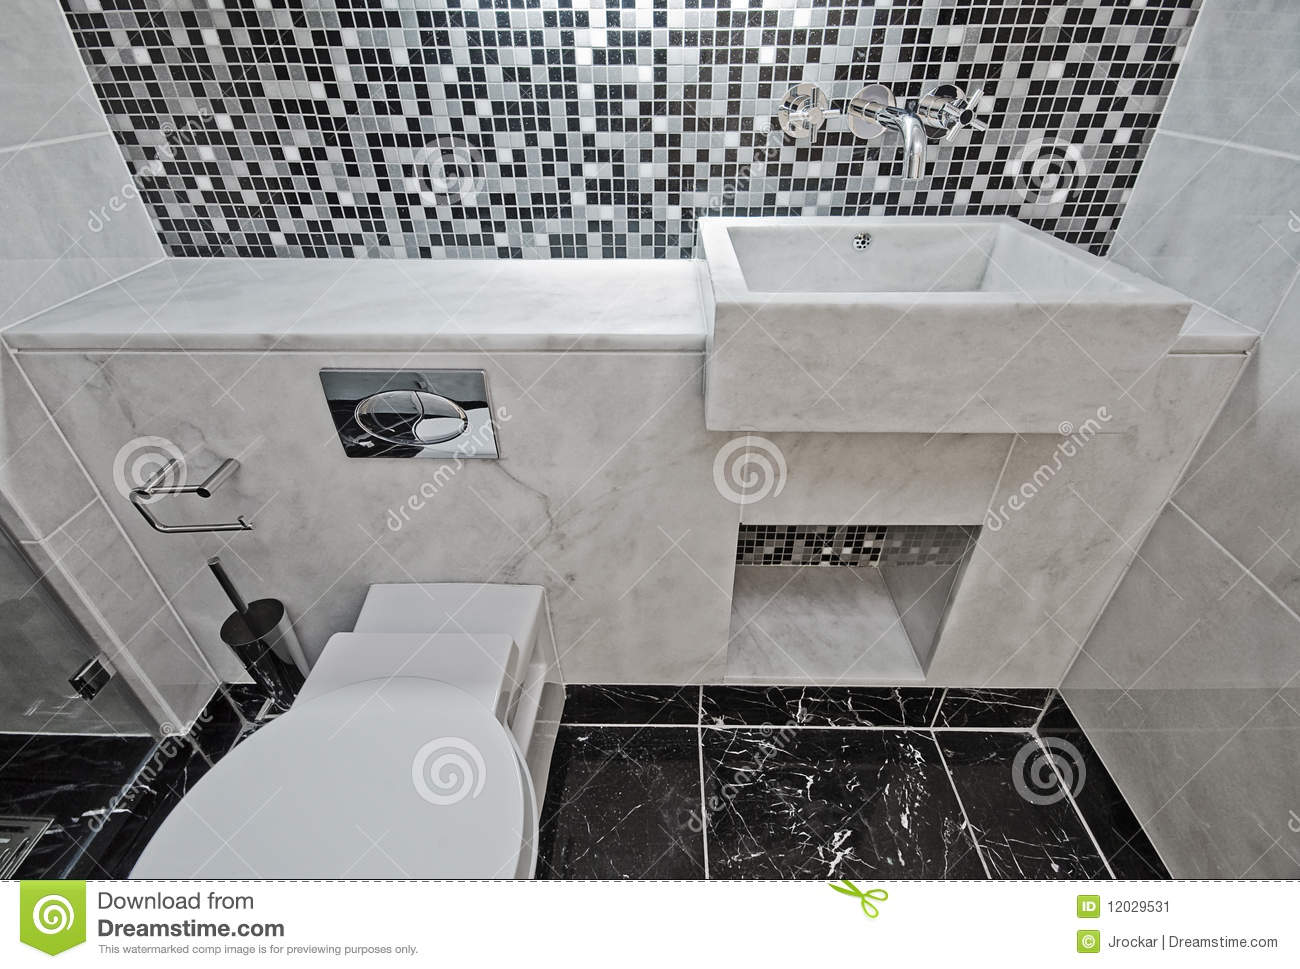 Piastrelle Tipo Mosaico Marble Bathroom With Mosaic Tiles Stock Image Image Of